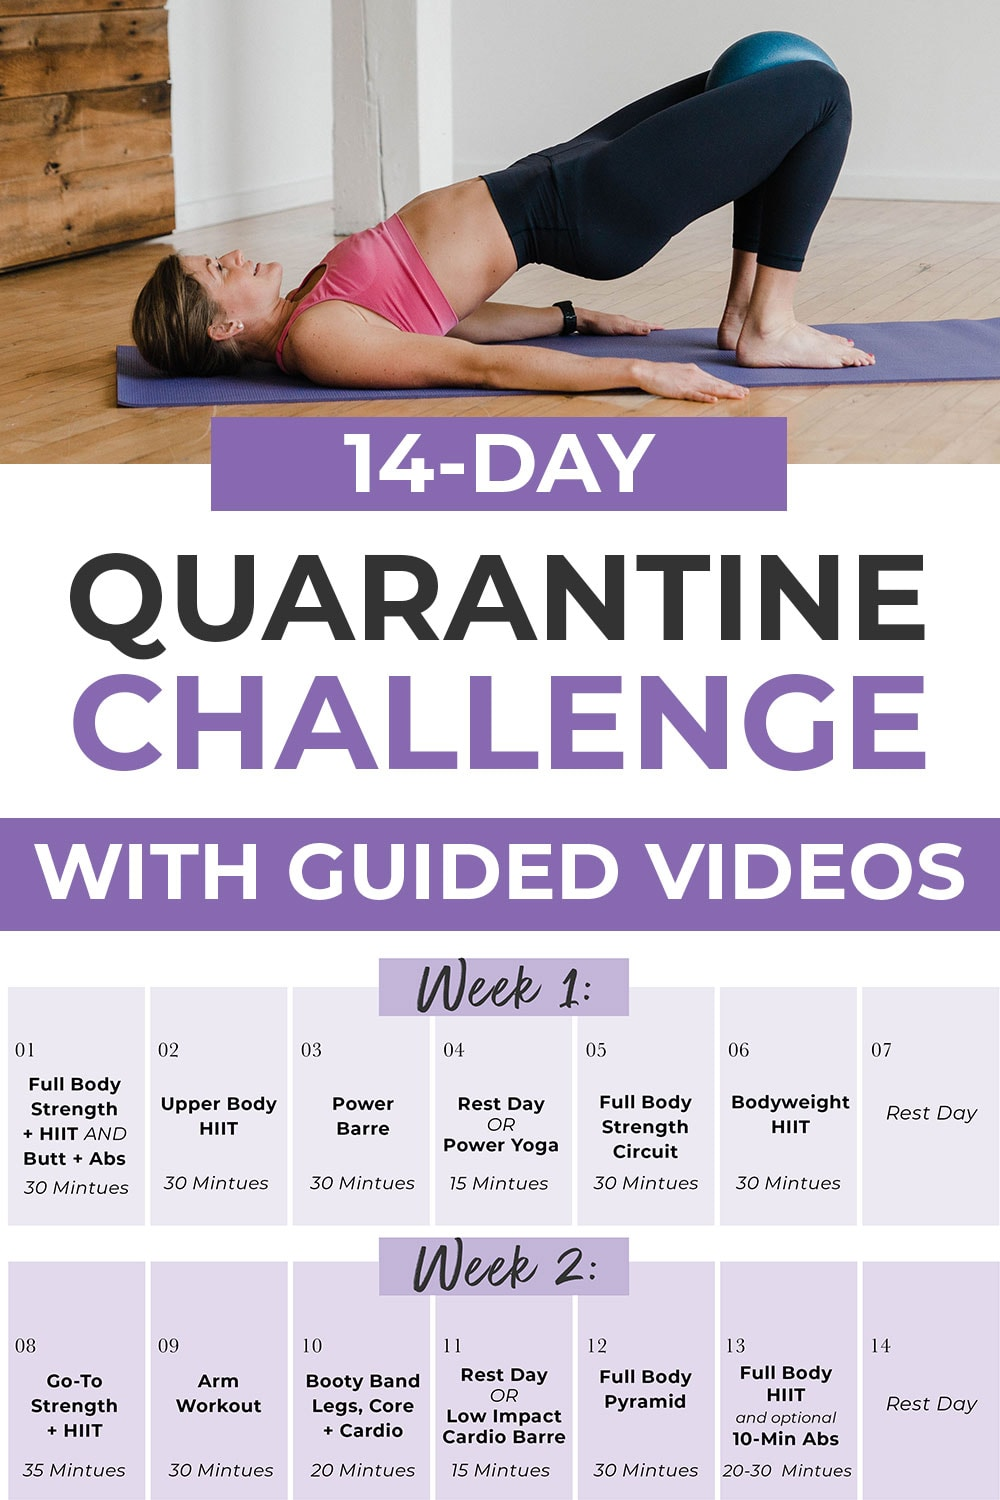 14-Day Workout Challenge + Full Body Workout Plan | Nourish Move Love